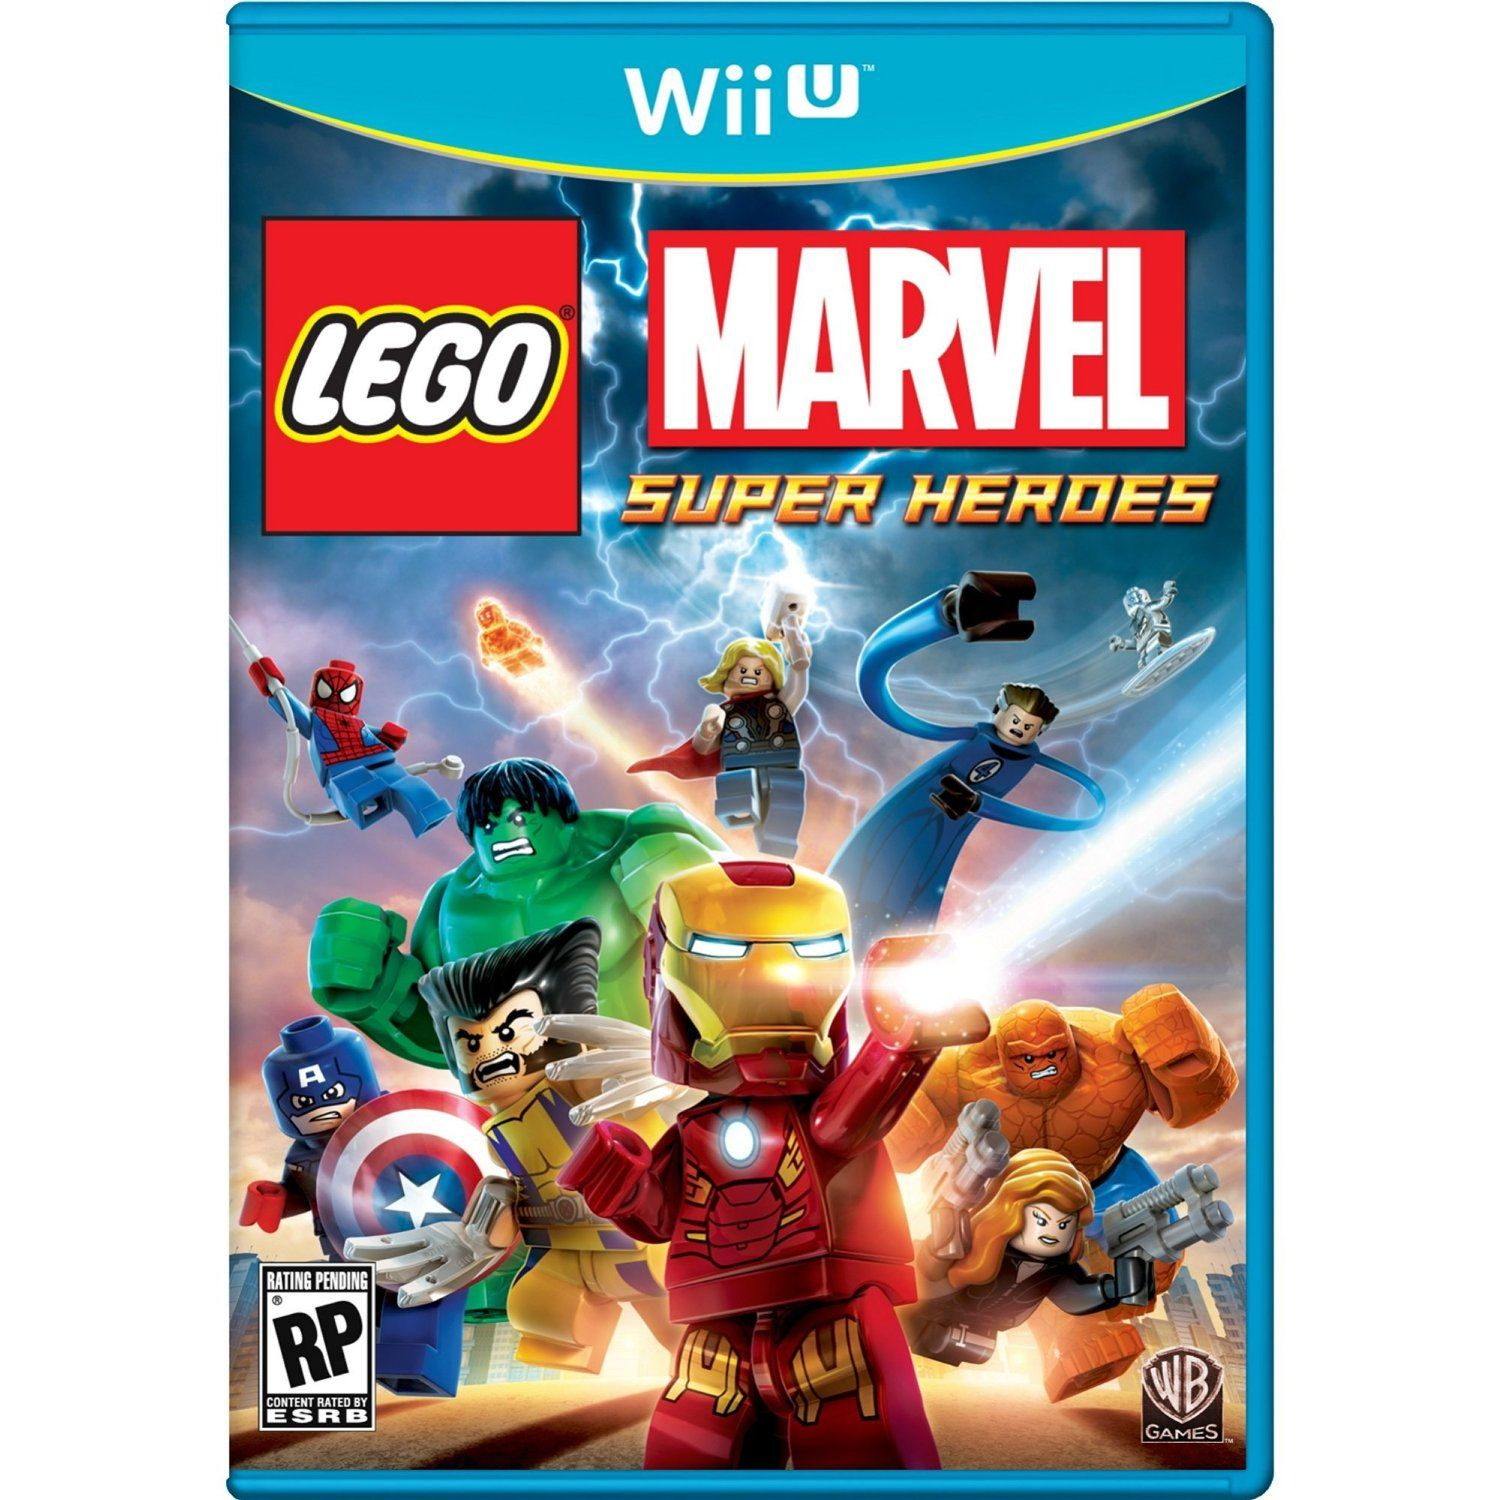 Lego Marvel Super Heroes (Nintendo Wii U, 3DS, PS3 or PC